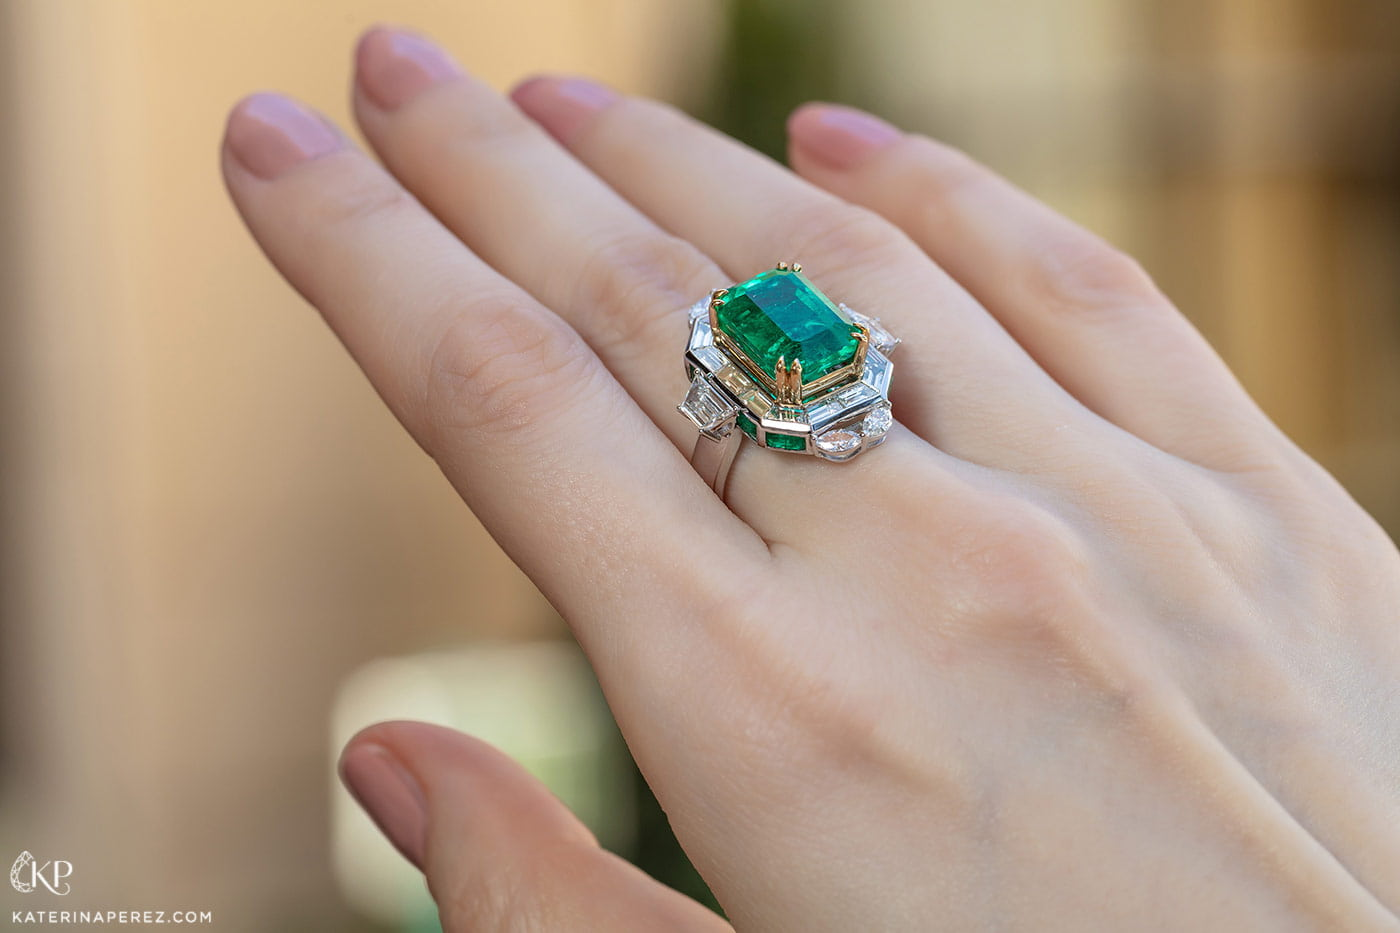 Sunita Nahata 'Regalia' collection ring with 8.57ct Colombian emerald, accenting emeralds and diamonds in white and yellow gold